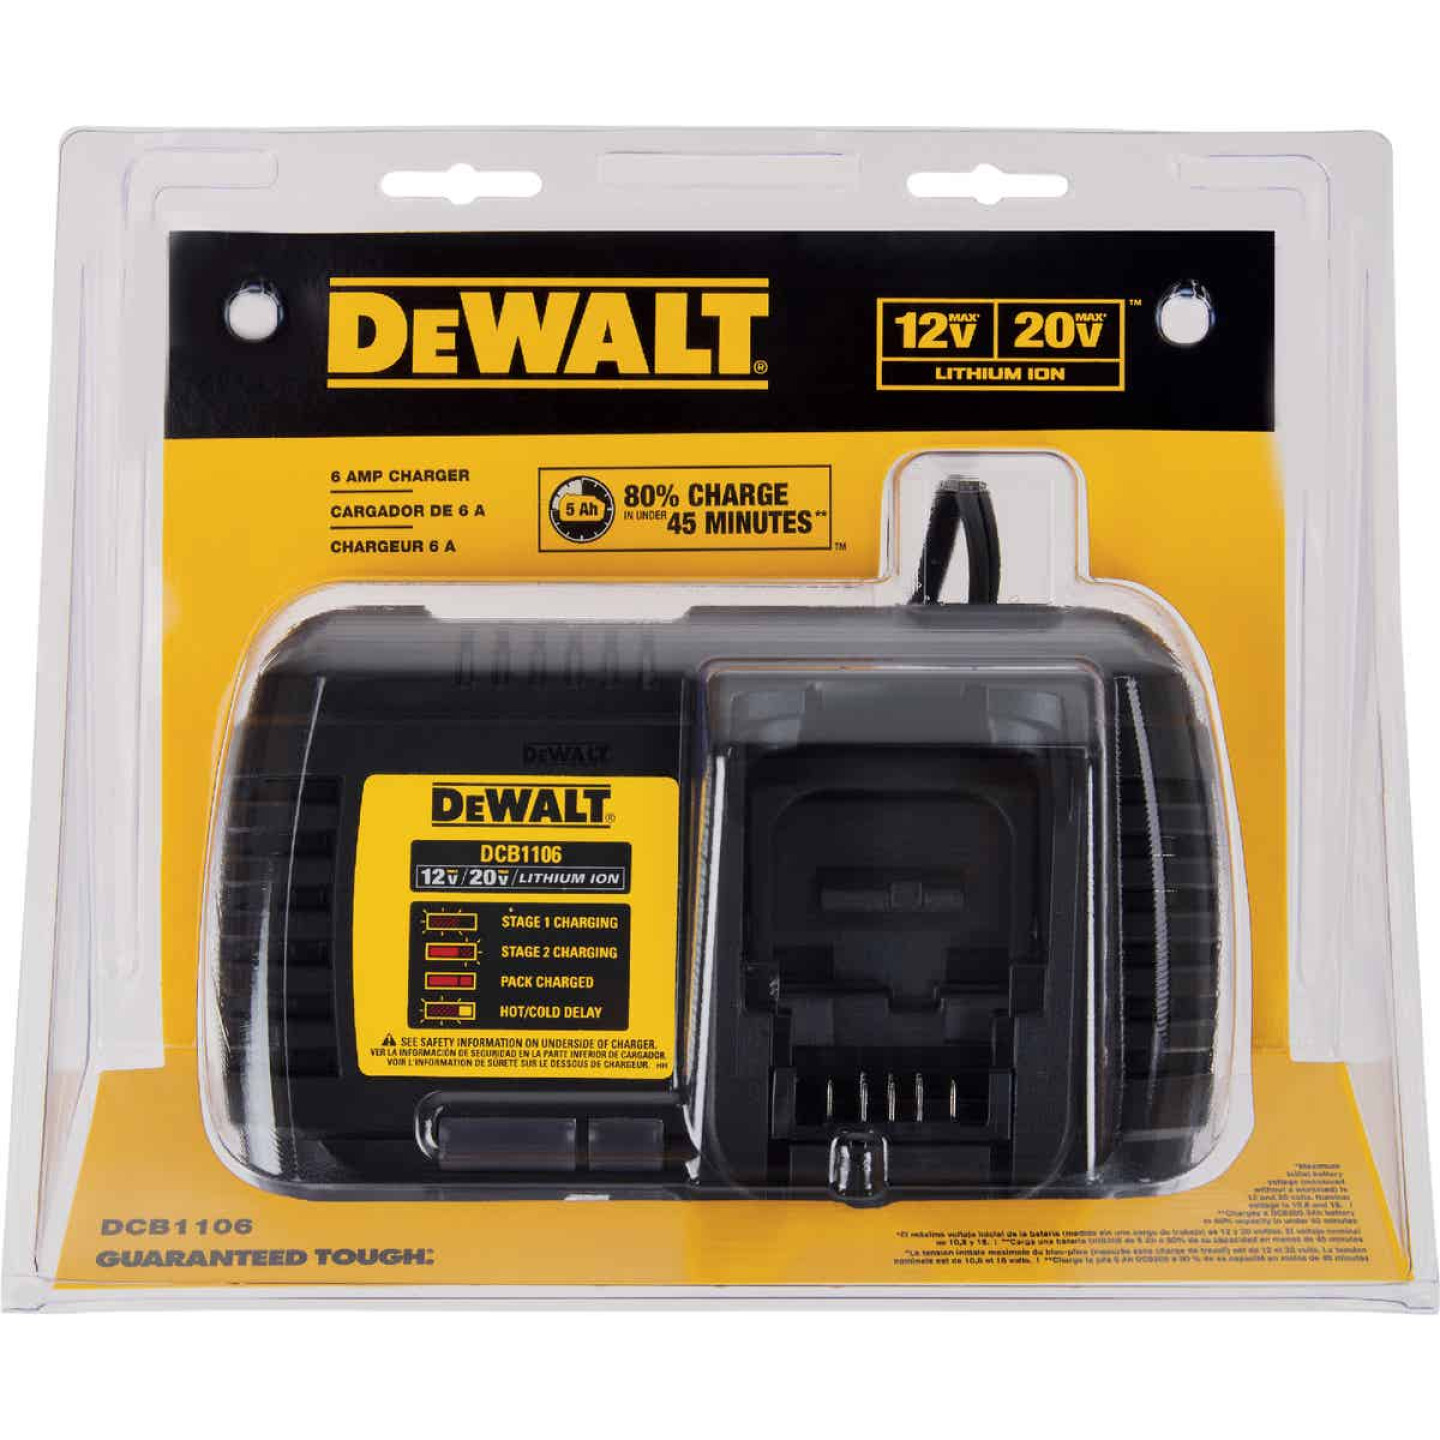 DeWalt 12 Volt MAX/20 Volt MAX and Flexvolt Lithium-Ion Battery Charger Image 1